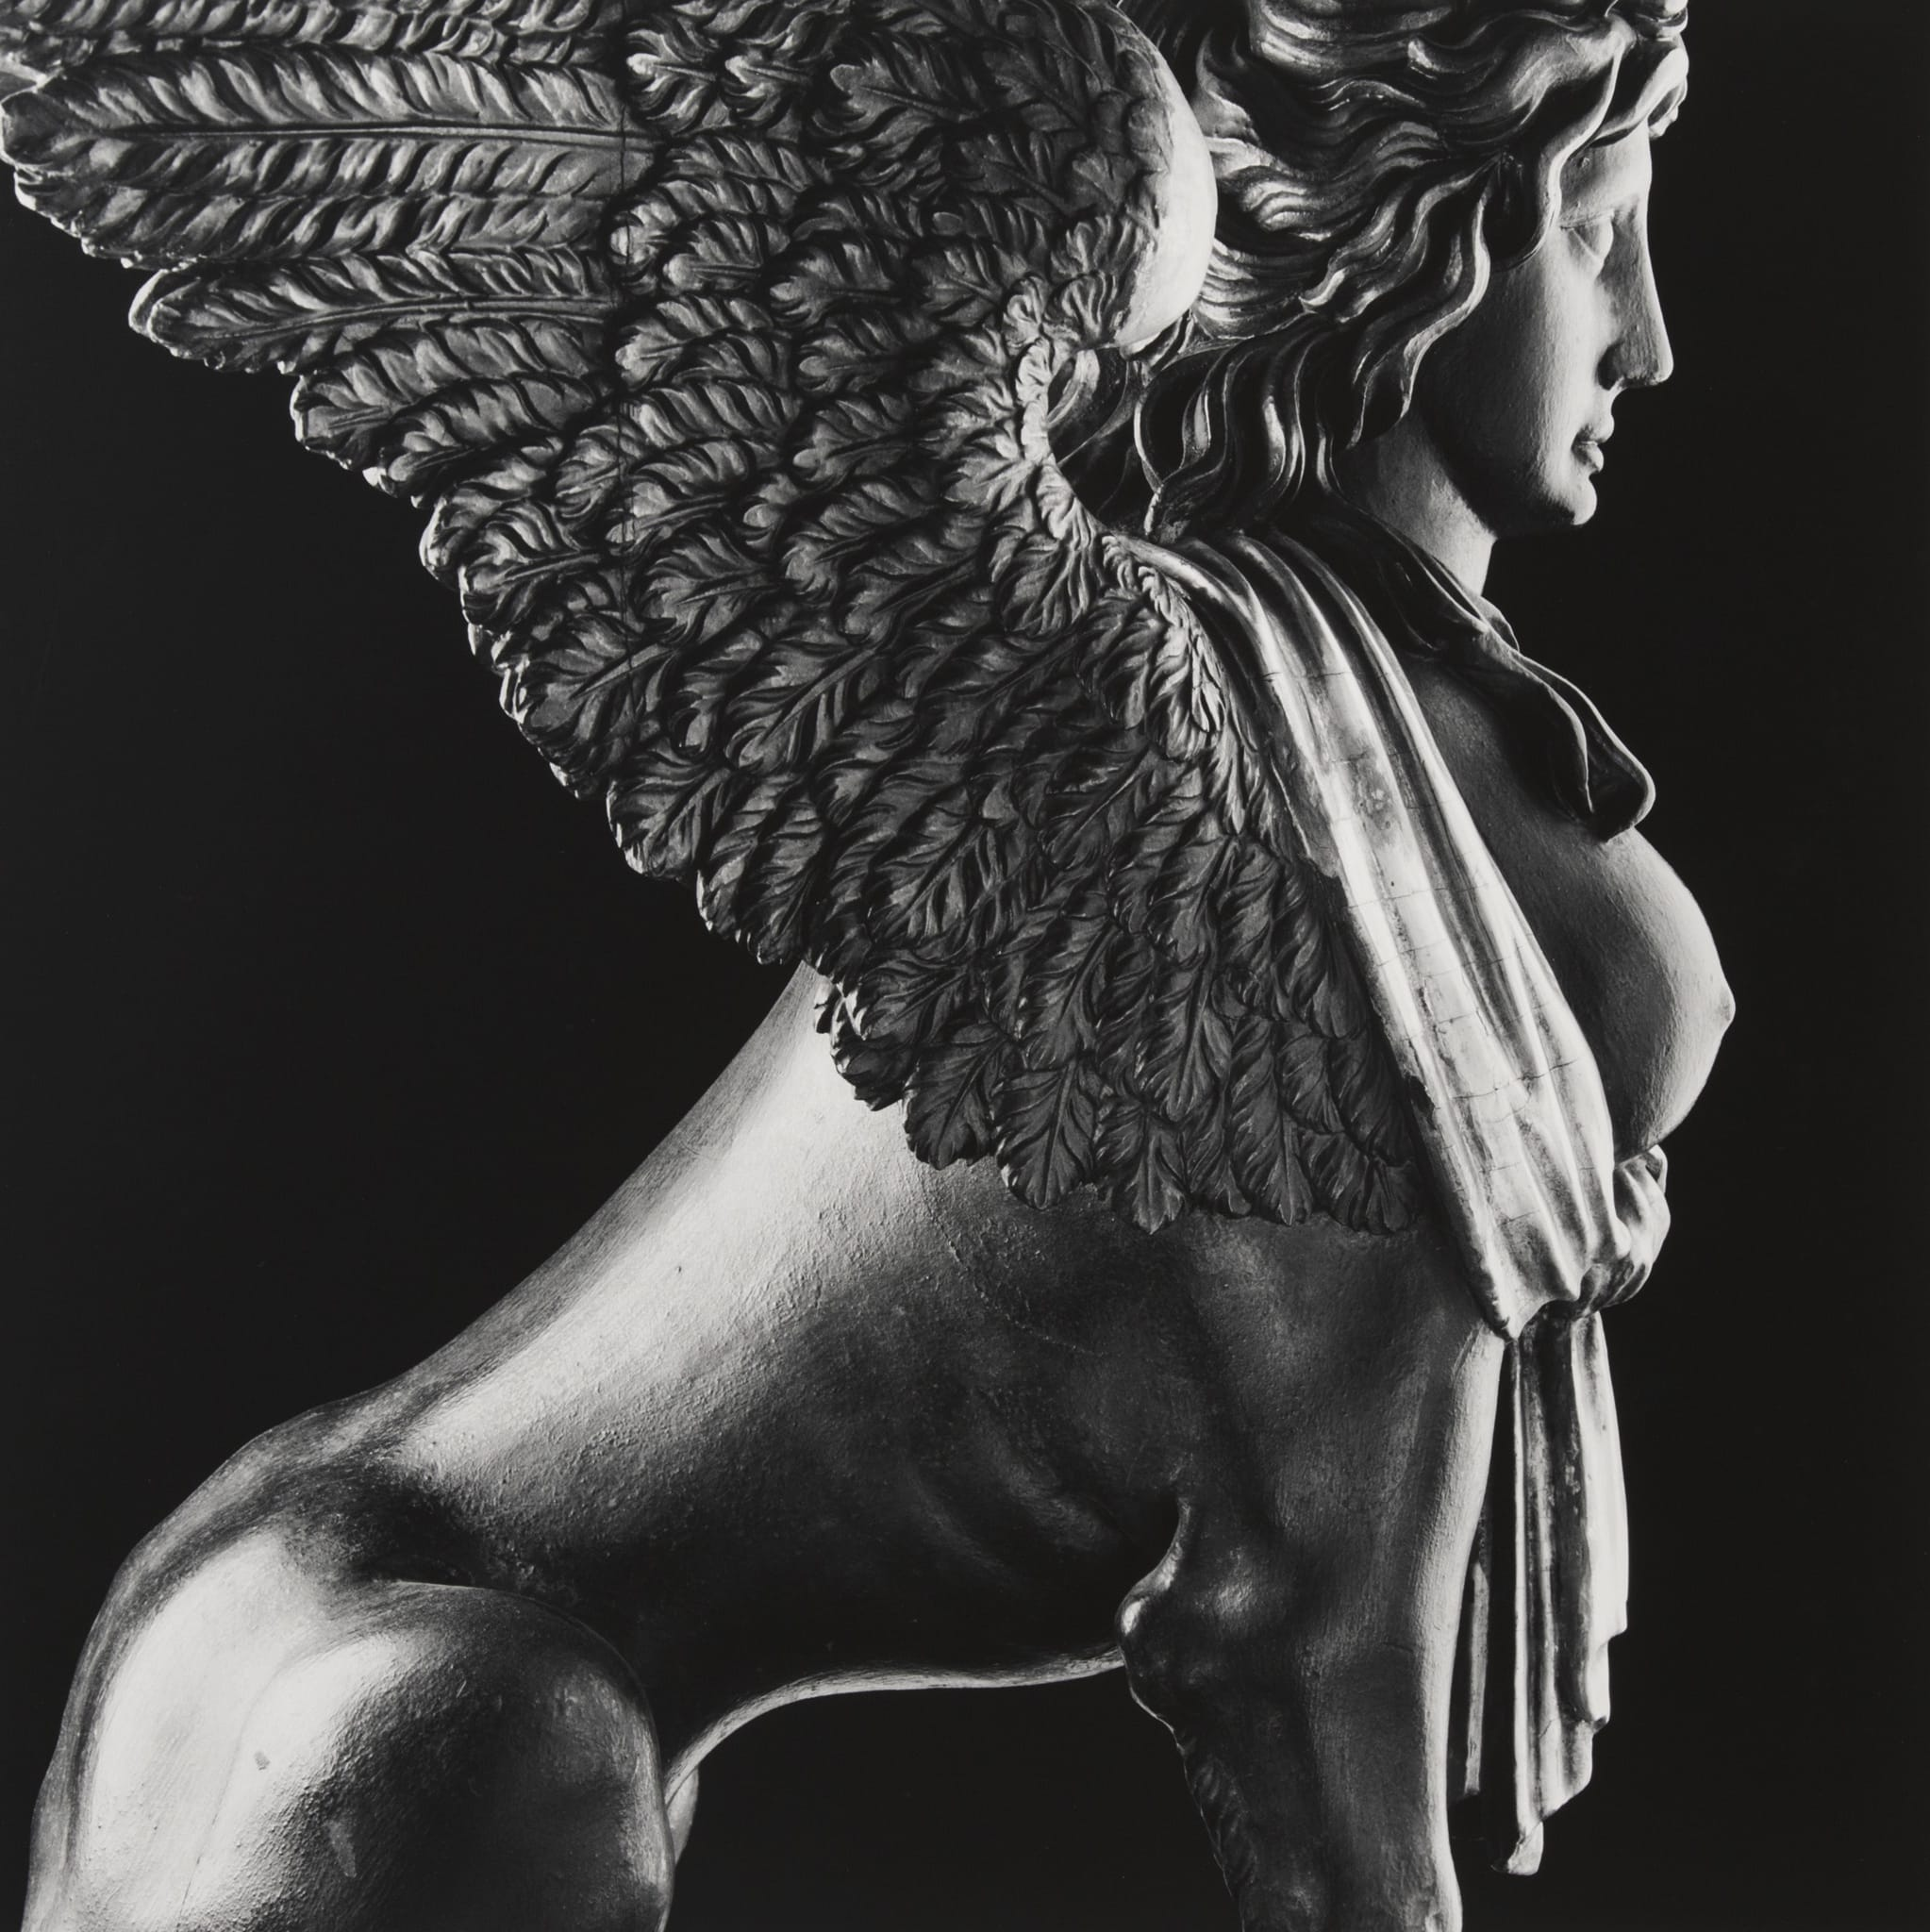 Sphinx by Robert Mapplethorpe